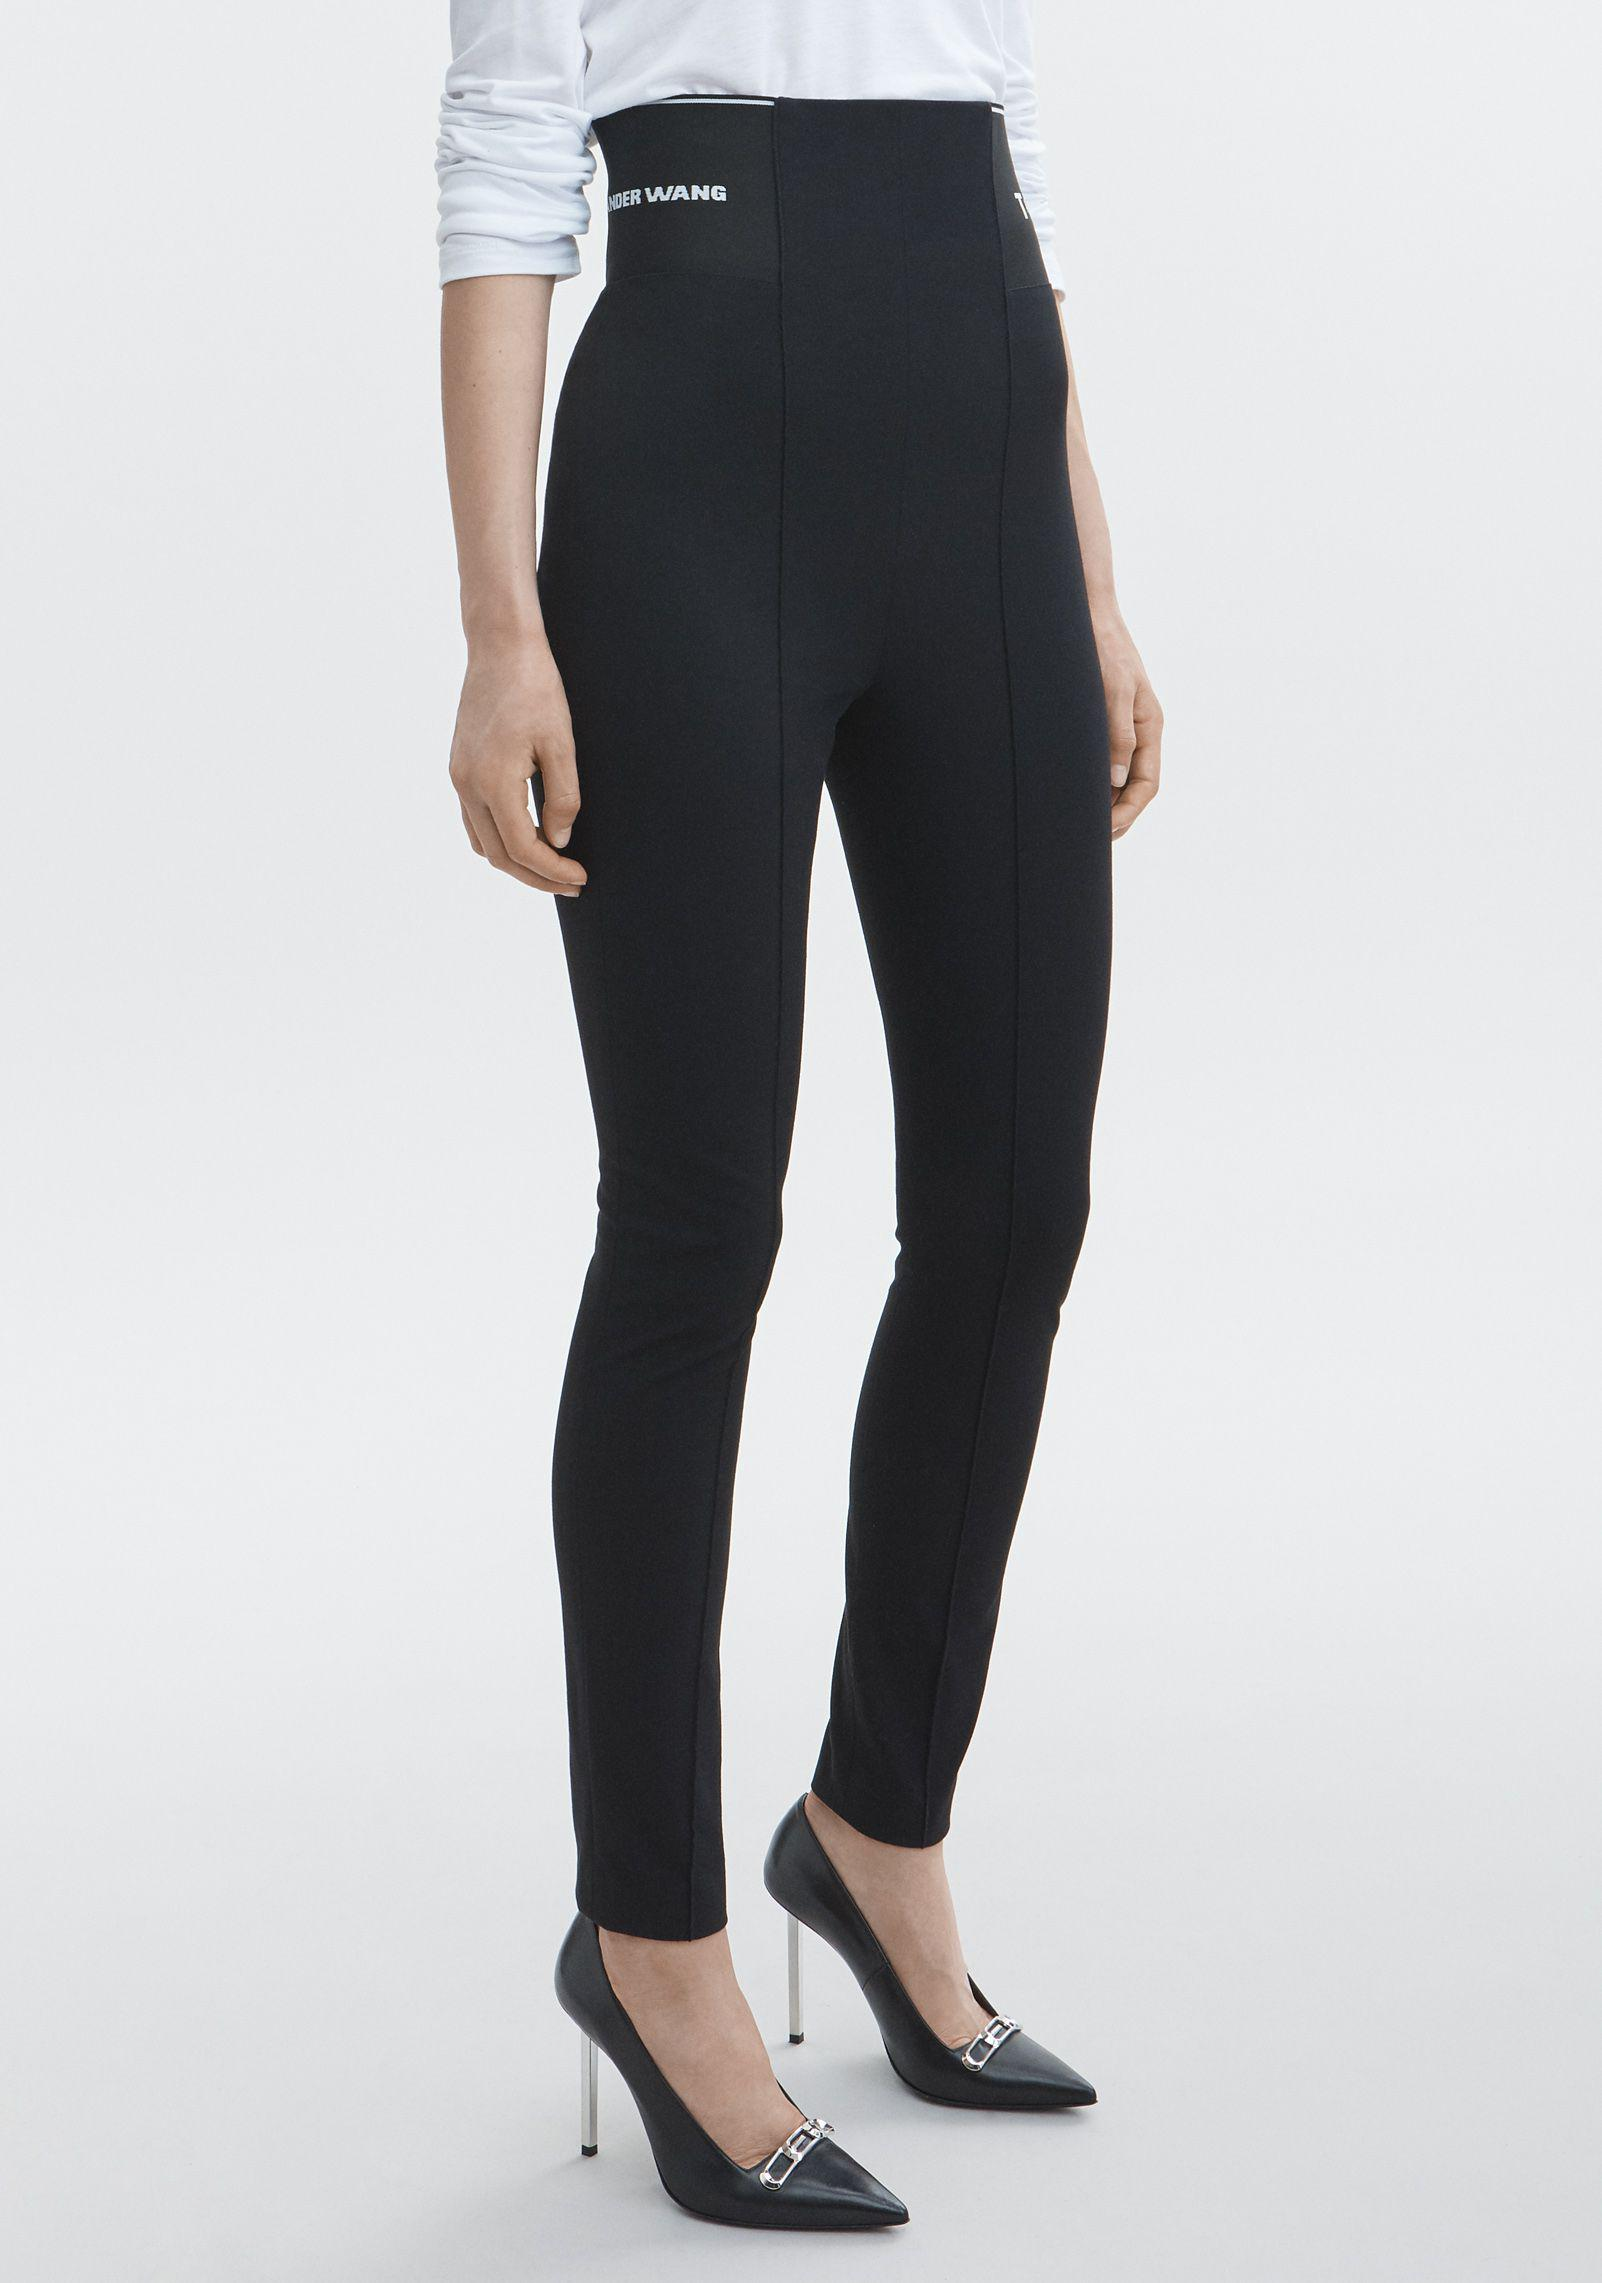 c6ad44a416 t-by-alexander-wang-Black-LEGGING-With-Logo-Elastic.jpeg